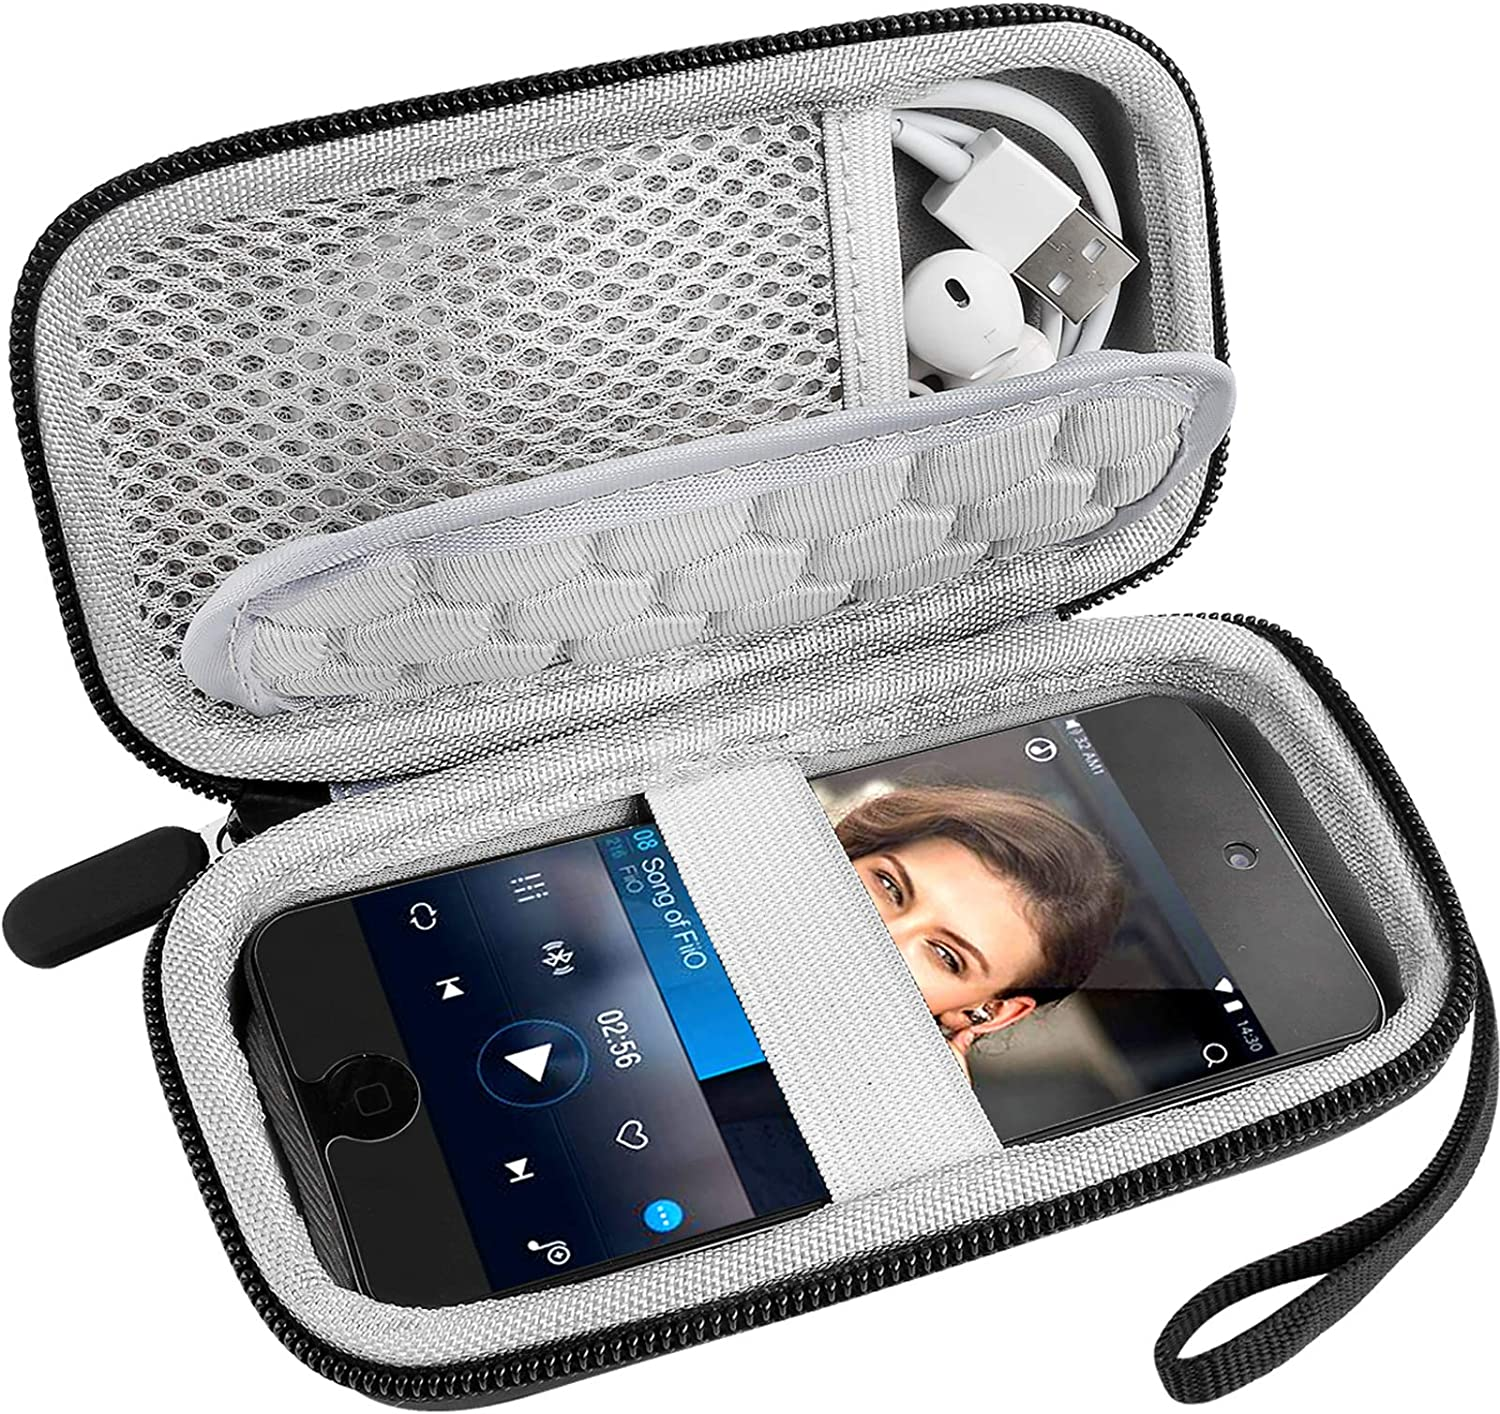 MP3 MP4 Player Cases Compatible with iPod Touch and Mibao MP3 Player? Soulcker?Sandisk MP3 Player?G.G.Martinsen?Grtdhx?Sony NW-A45?B Walkman with Earphones, USB Cable, Memory Cards (Box Only)